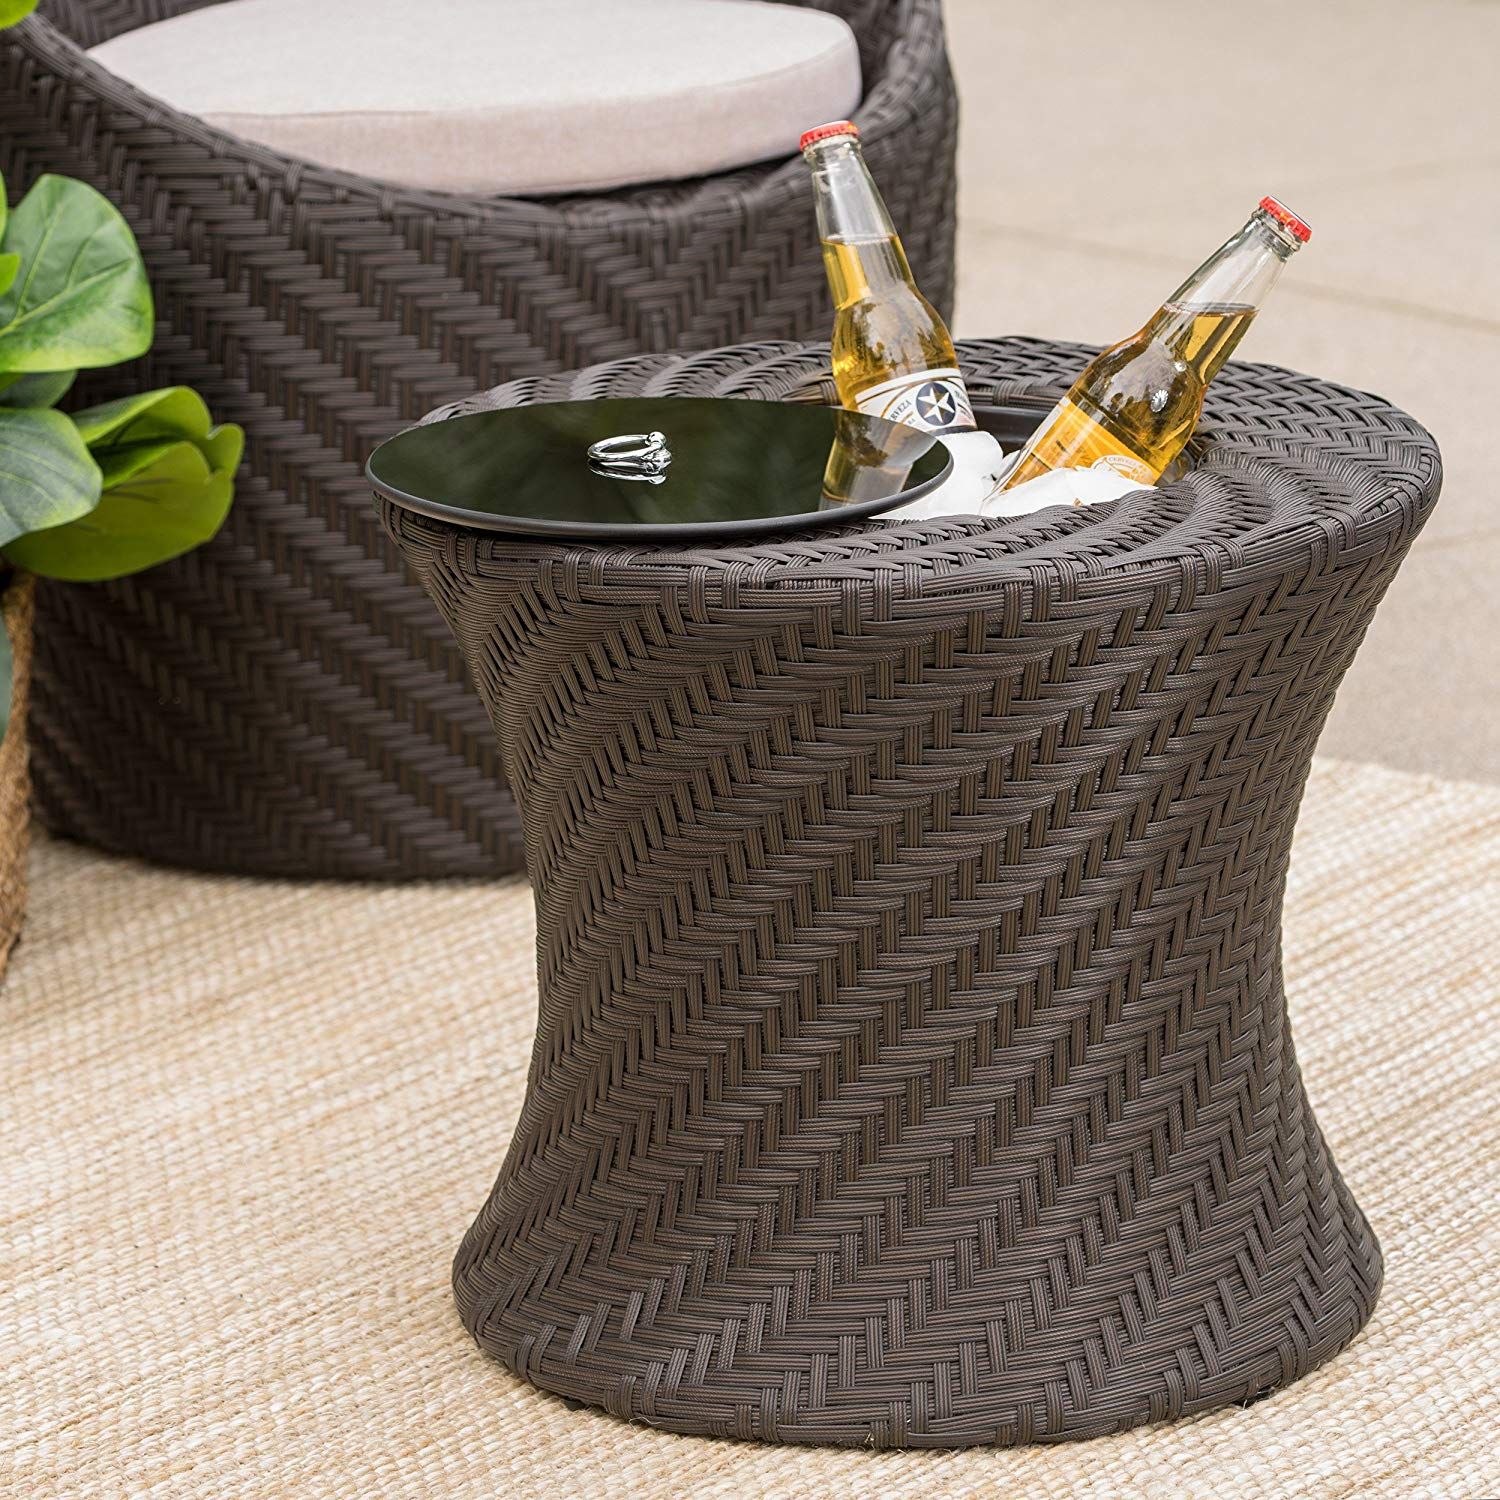 top outdoor side table reviews best patio tables for any wicker brown gdf studio belen with ice bucket large round dining modern accent drawer night lamp rod iron home office